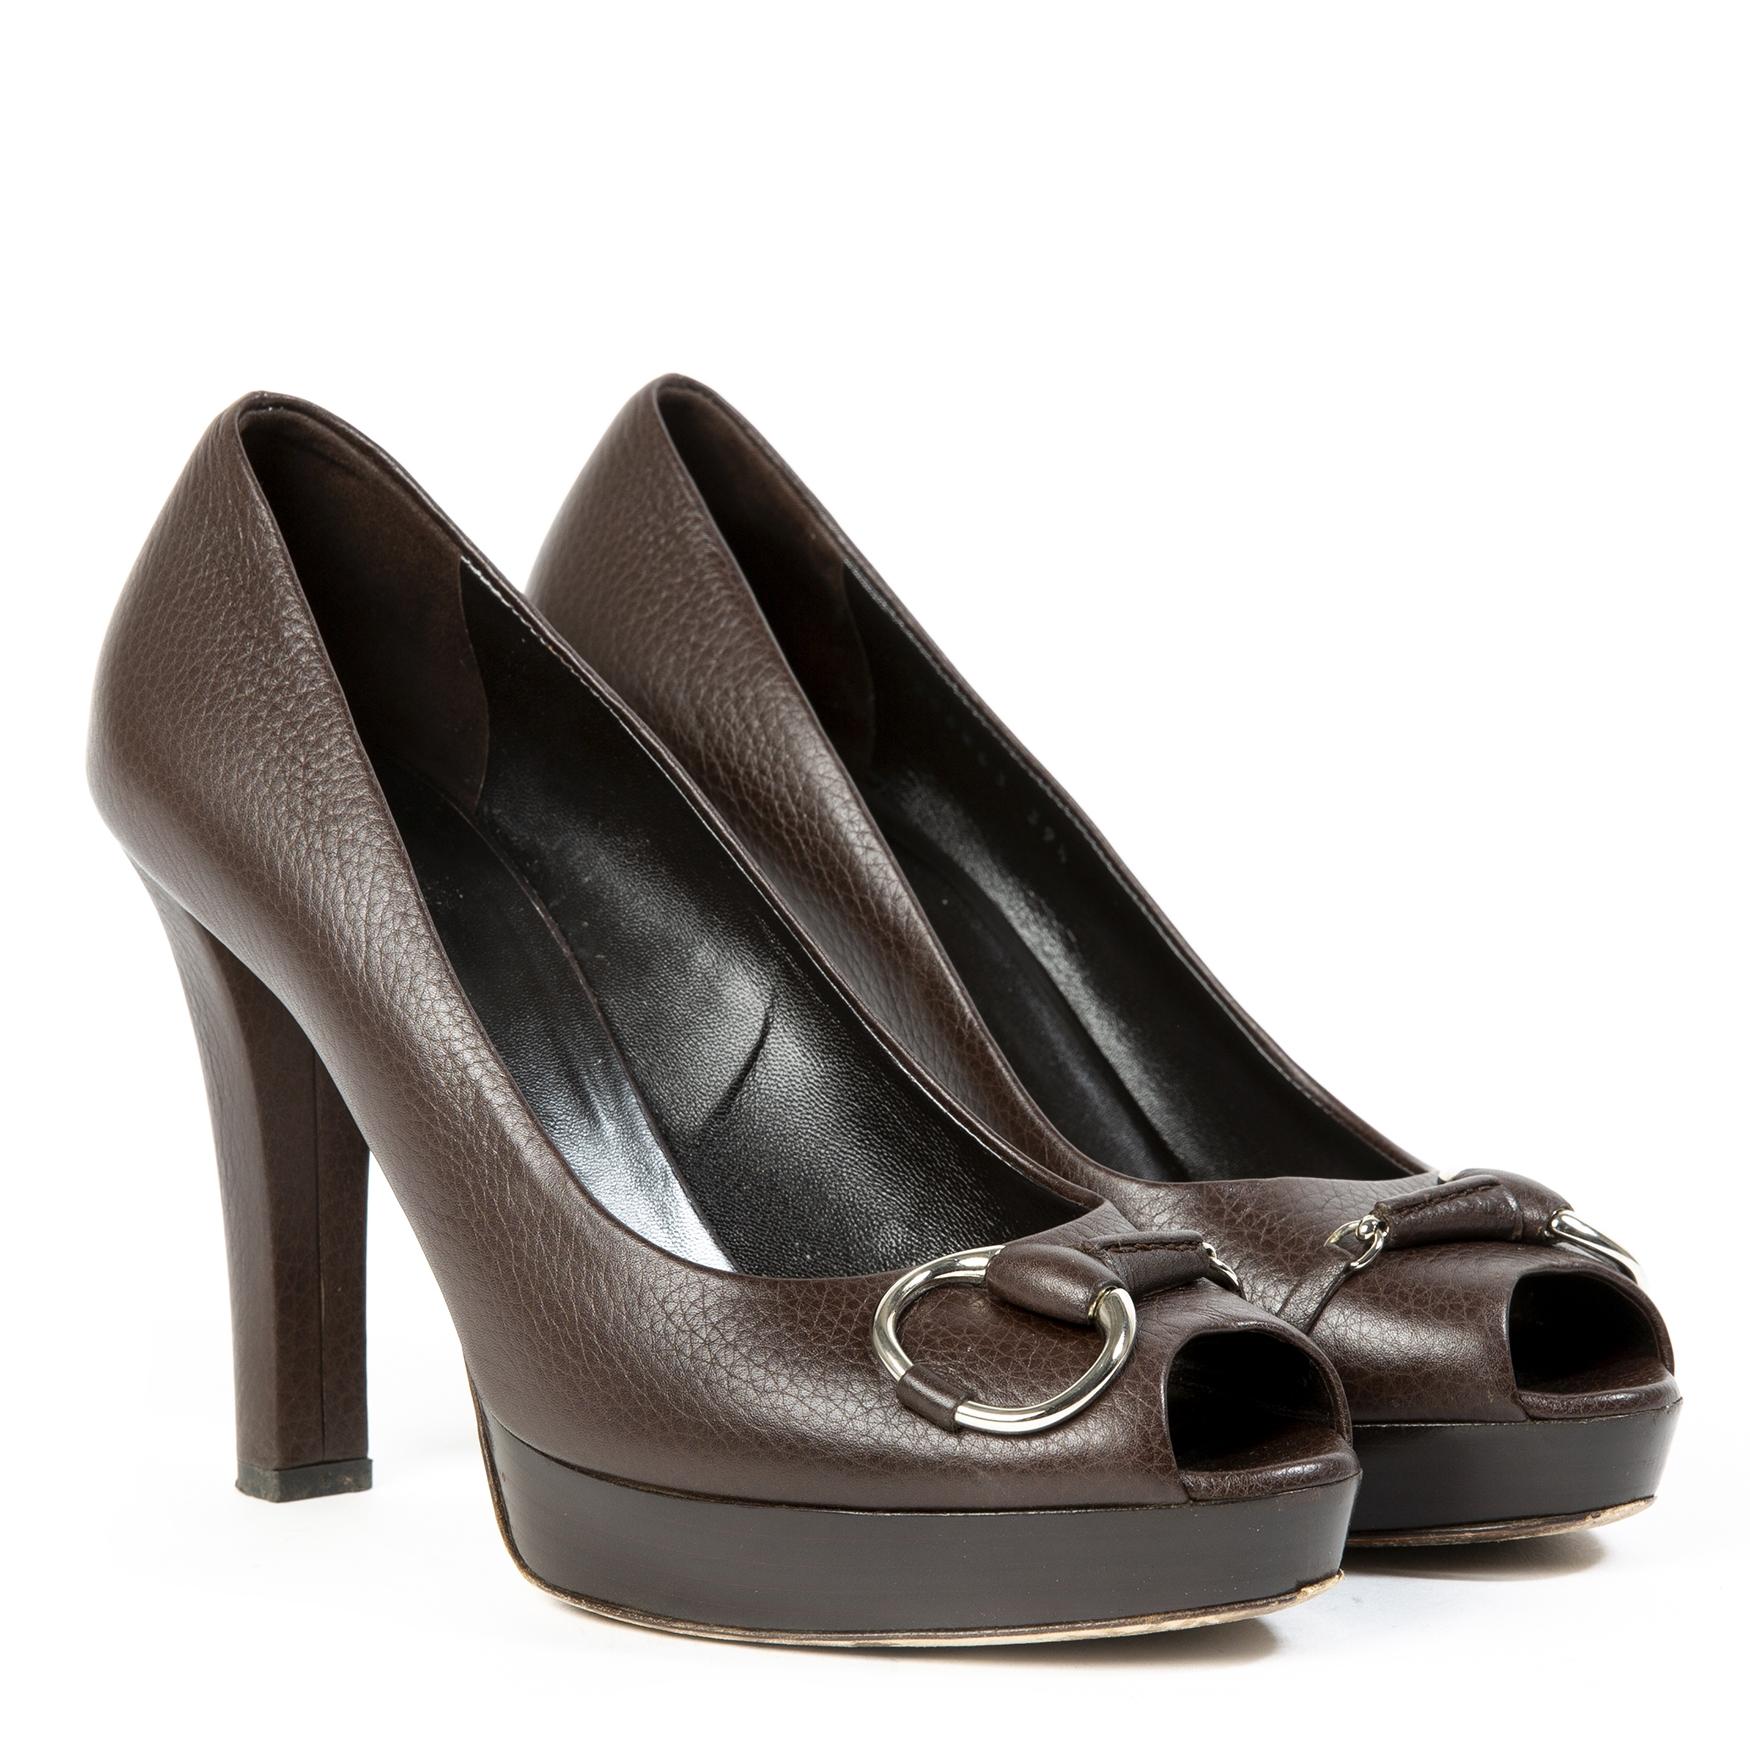 3b782ac763d1 ... gucci brown horsebit peep-toe pumps now for sale at labellov vintage  fashion webshop belgium